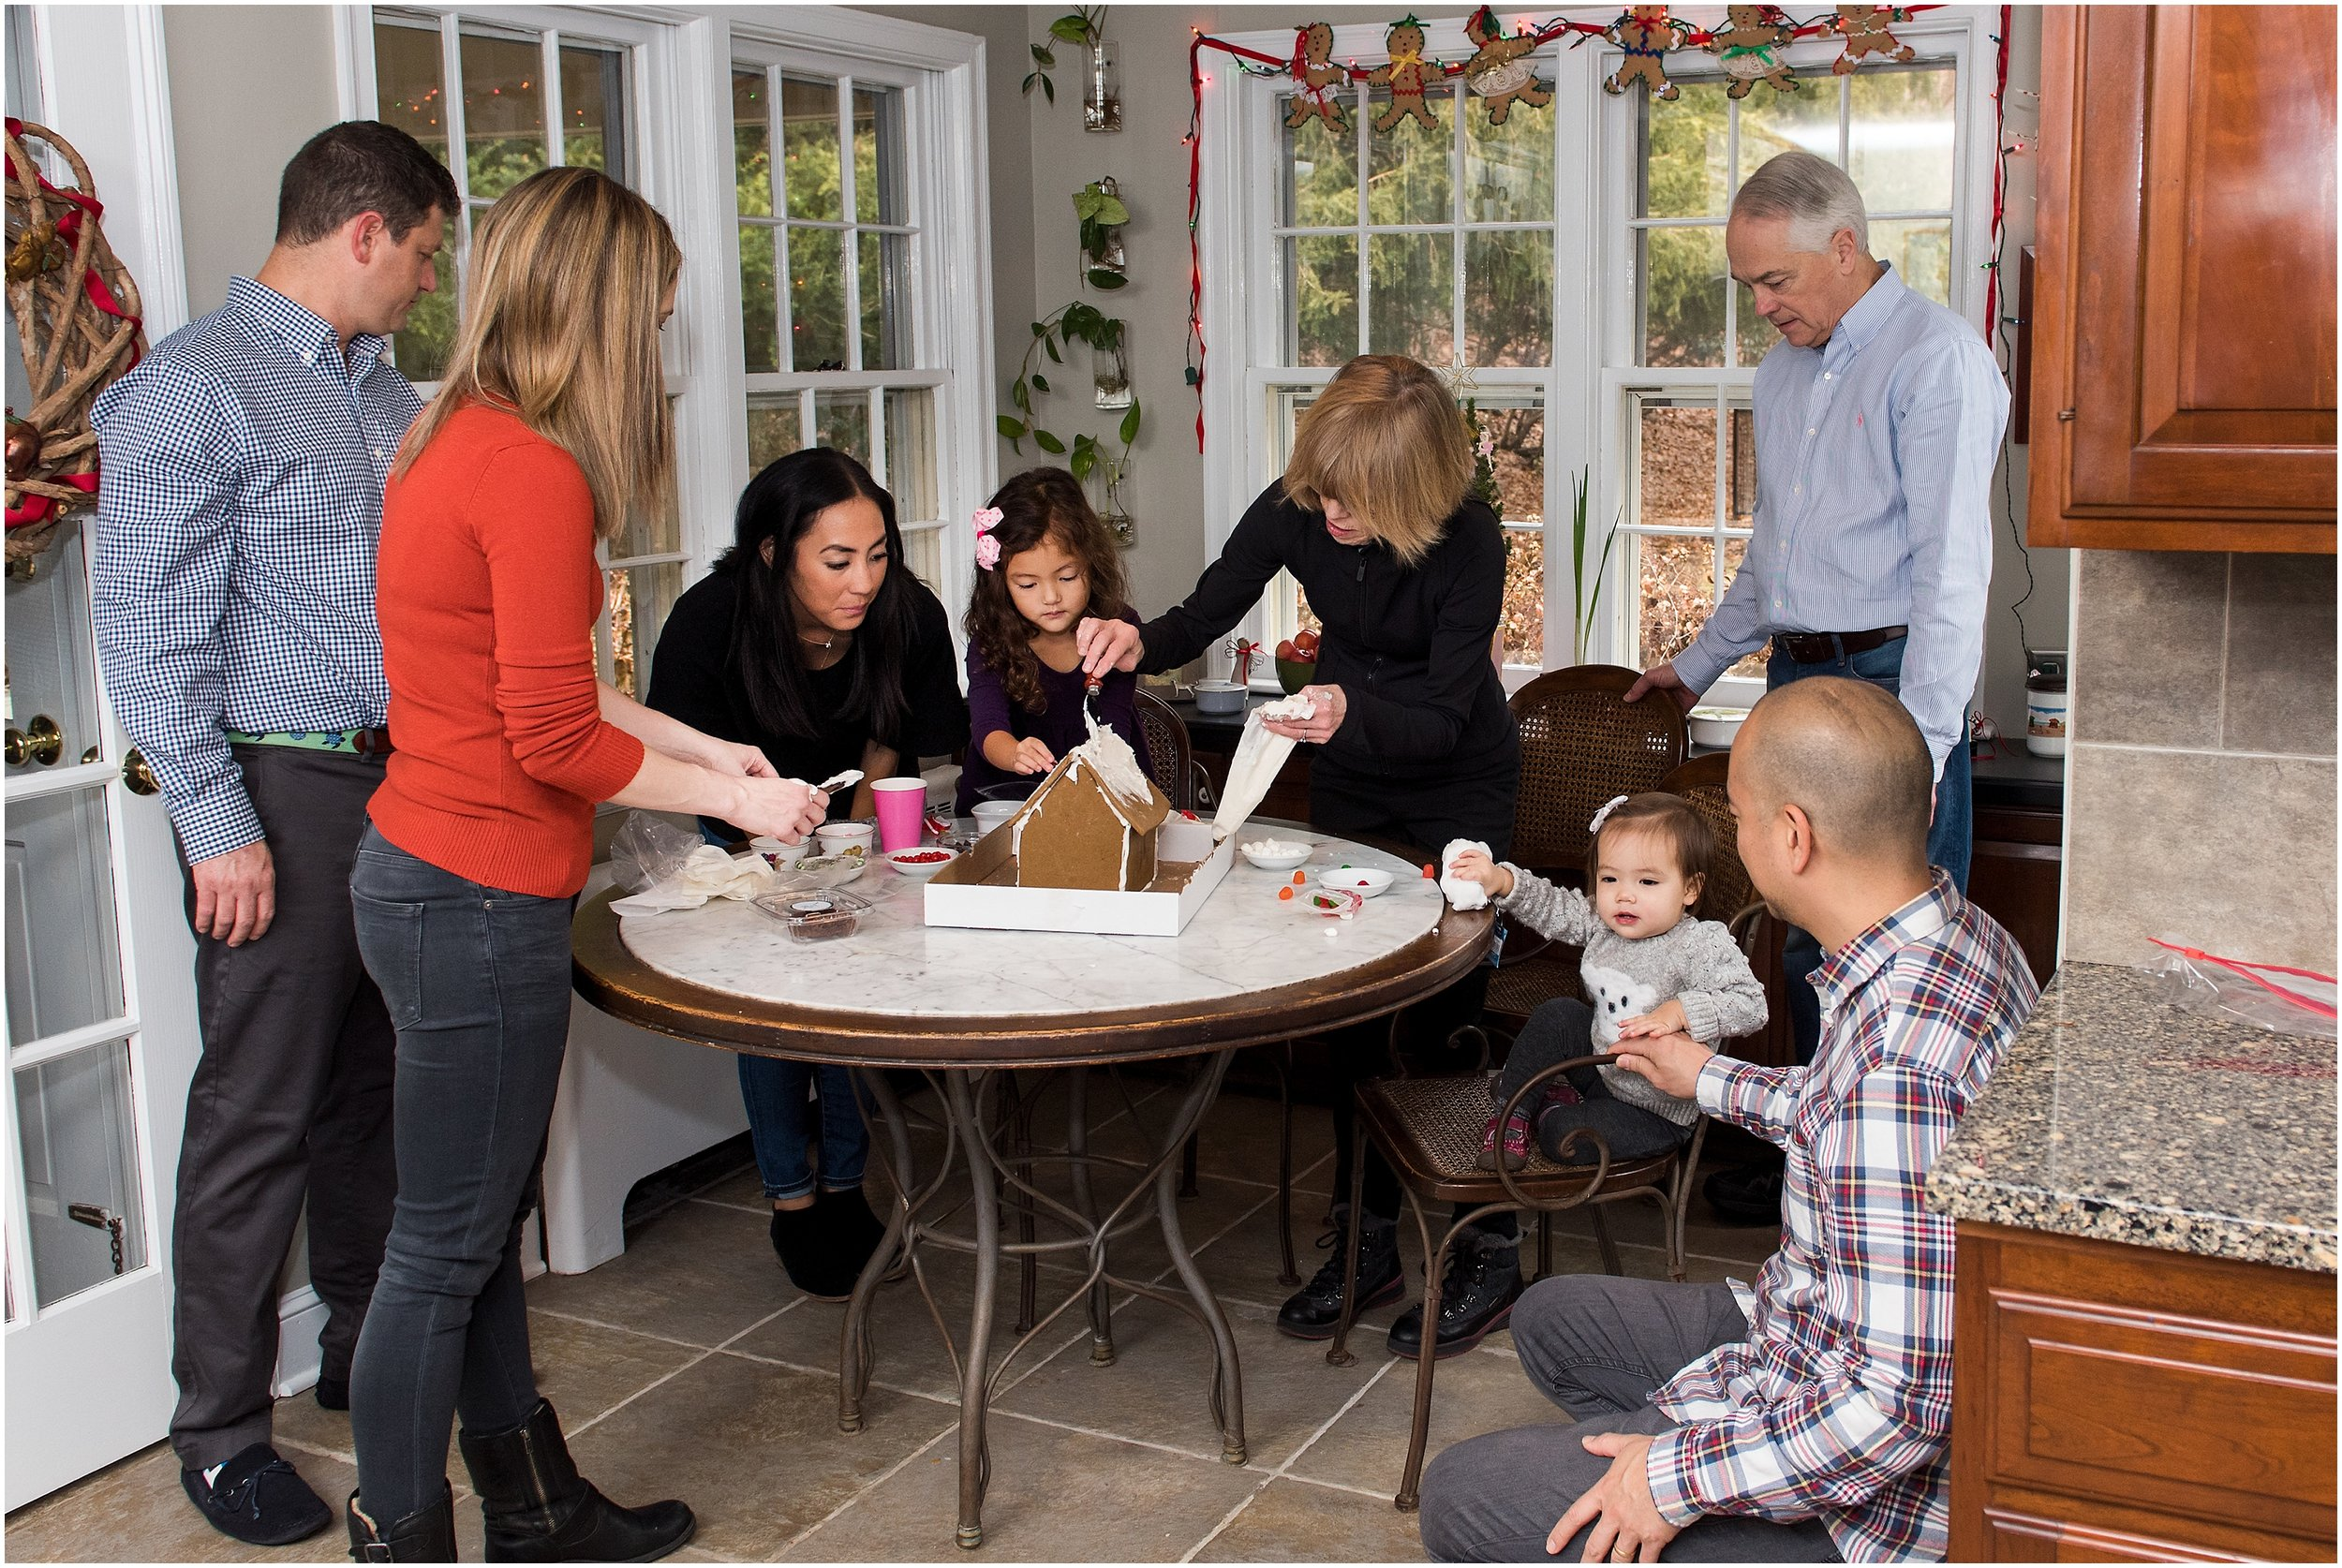 decorating gingerbread house, ct family photography